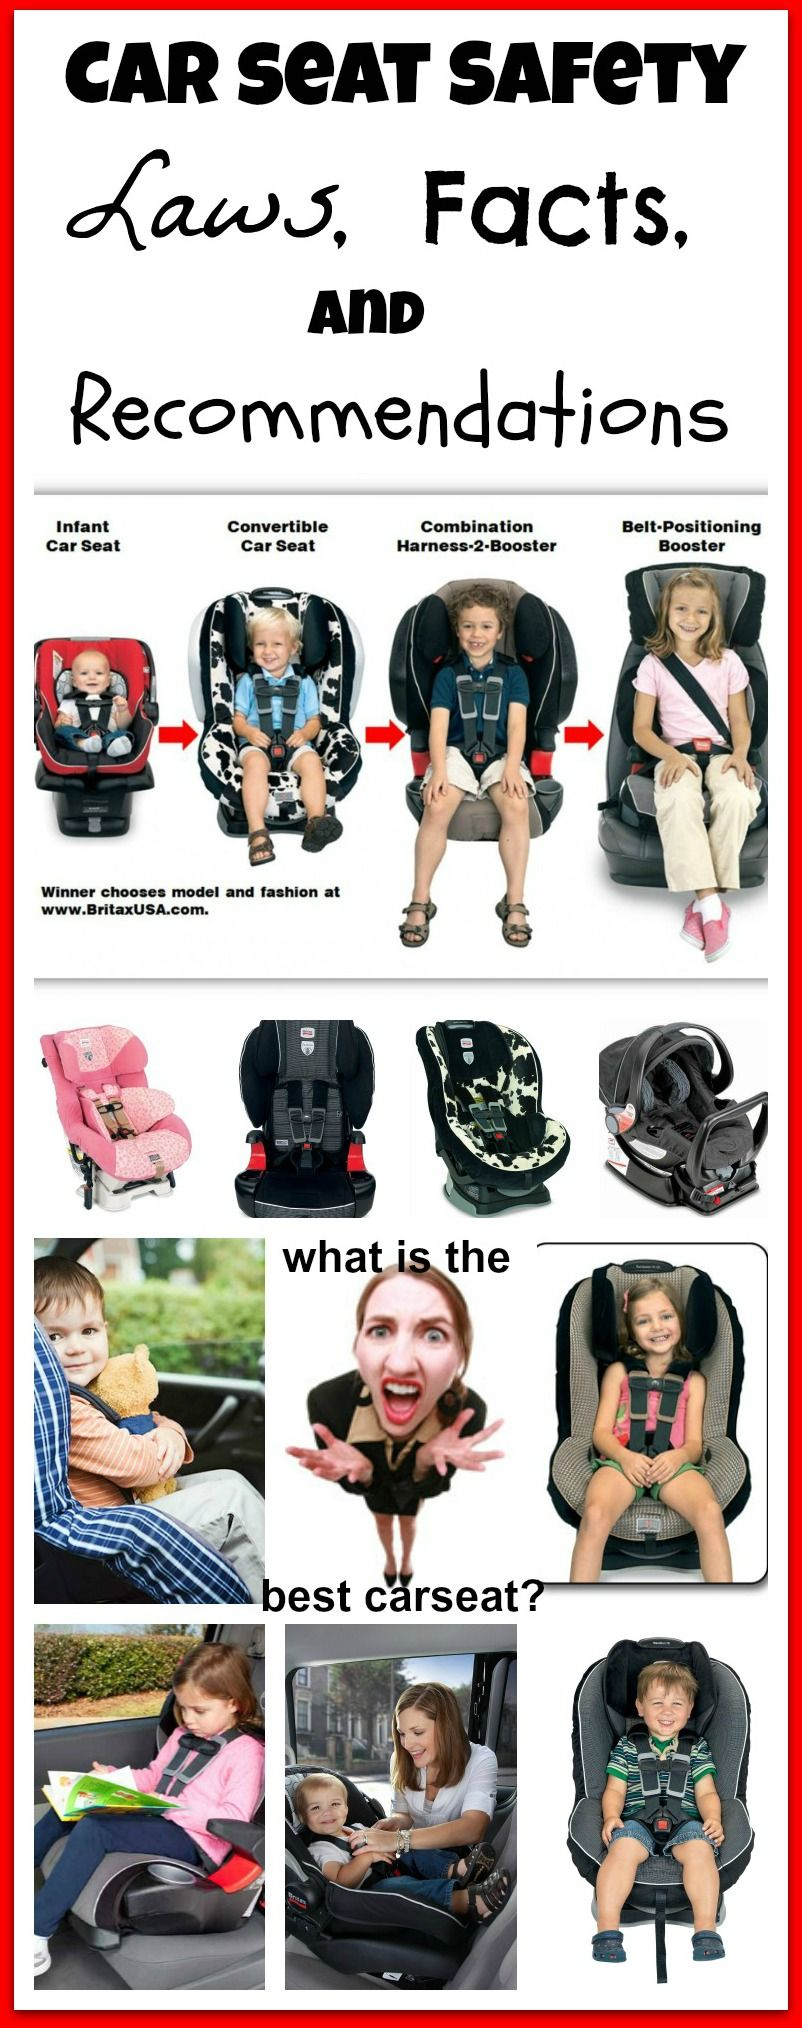 Car Seat Laws, Facts, and Recomdations! Which car seat is the ...